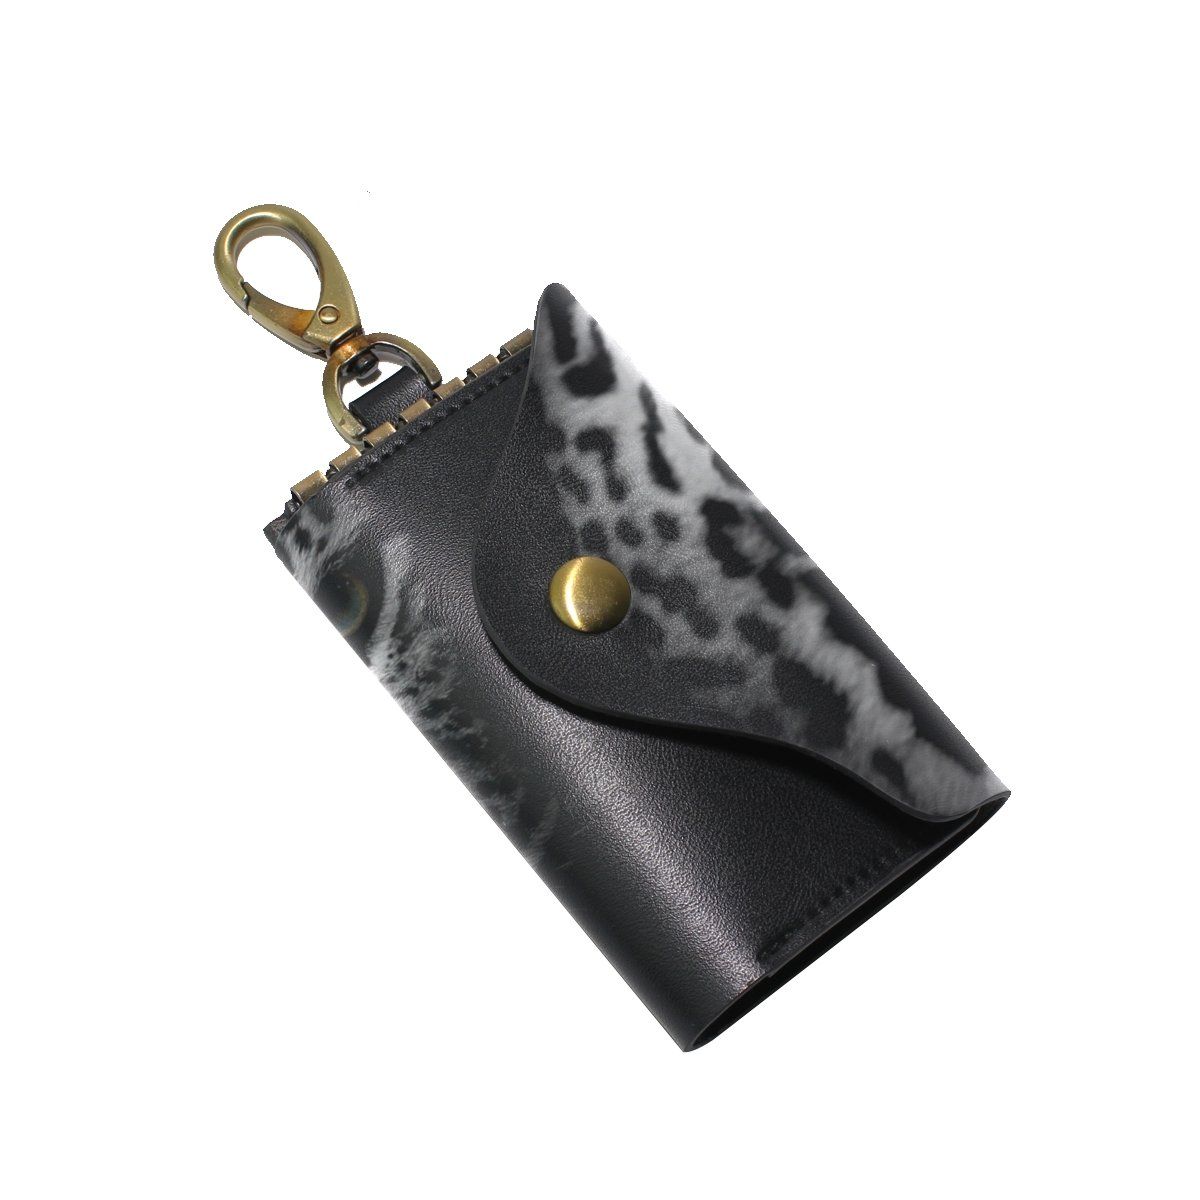 KEAKIA Close Up Leopard Portrait Leather Key Case Wallets Tri-fold Key Holder Keychains with 6 Hooks 2 Slot Snap Closure for Men Women